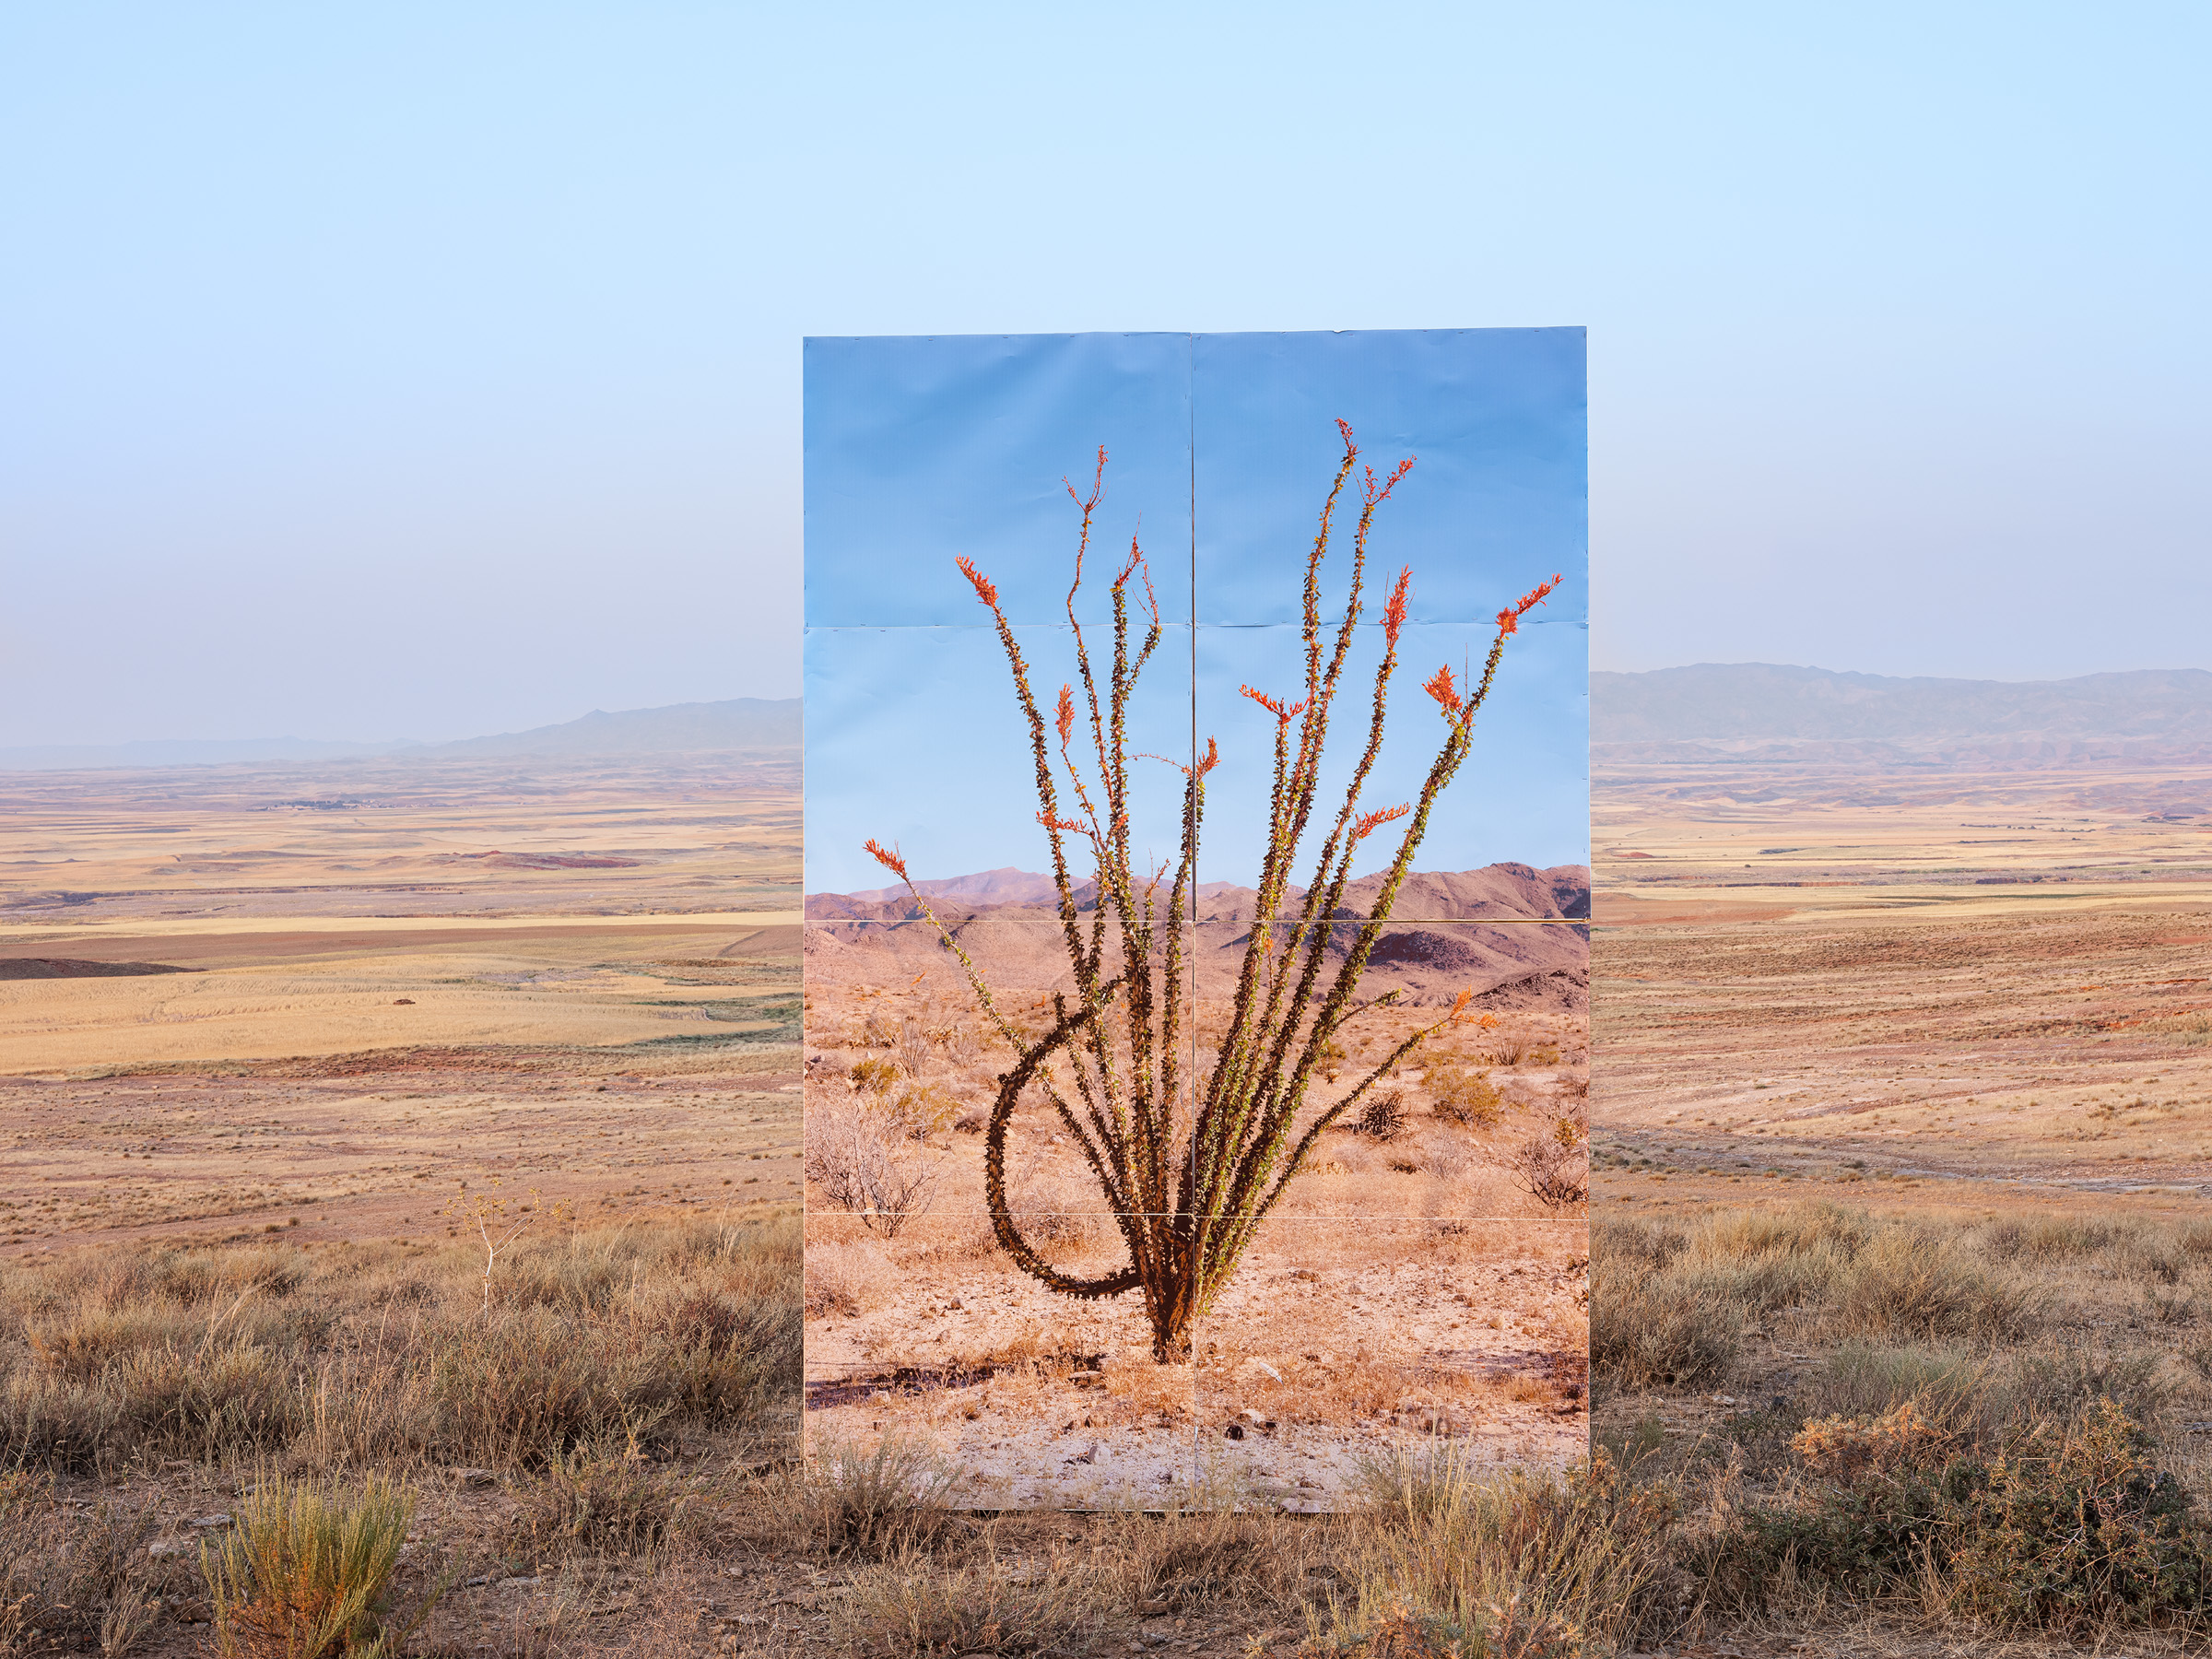 Gohar Dashti, Untitled 10, from the series Land/s, 2019. Courtesy of the artist